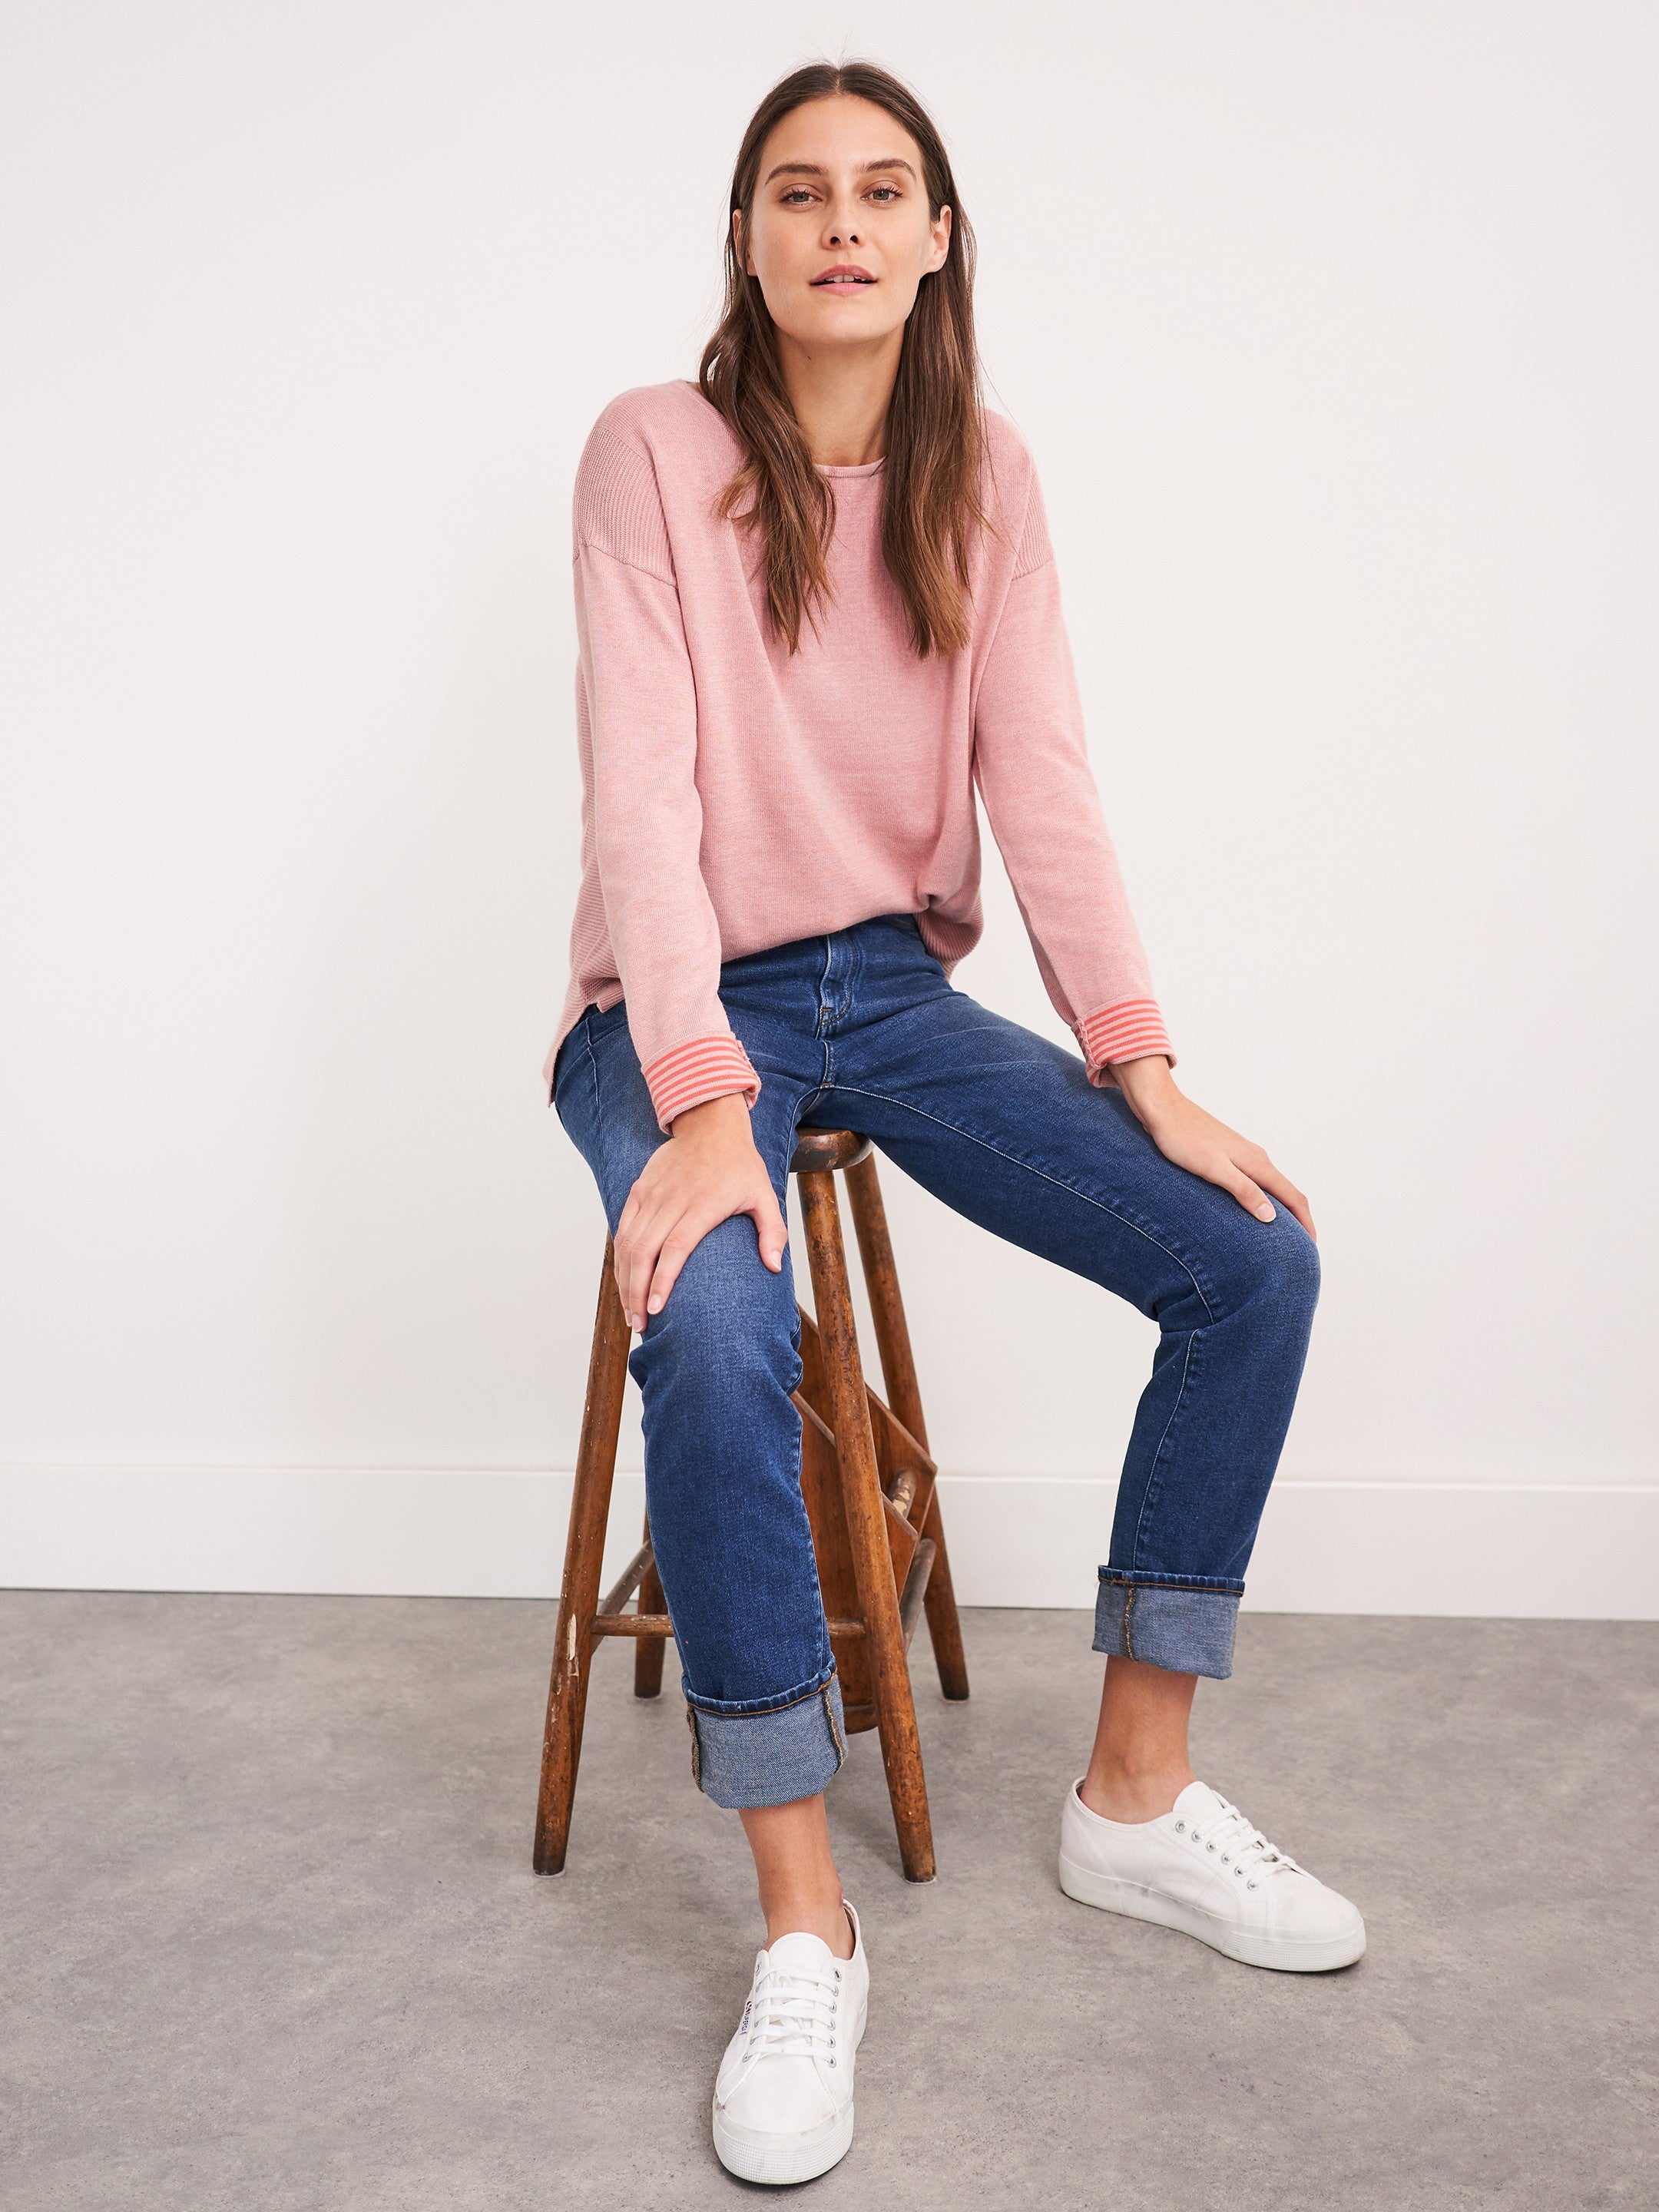 White Stuff Olivia Jumper for Ladies in Dusty Pink